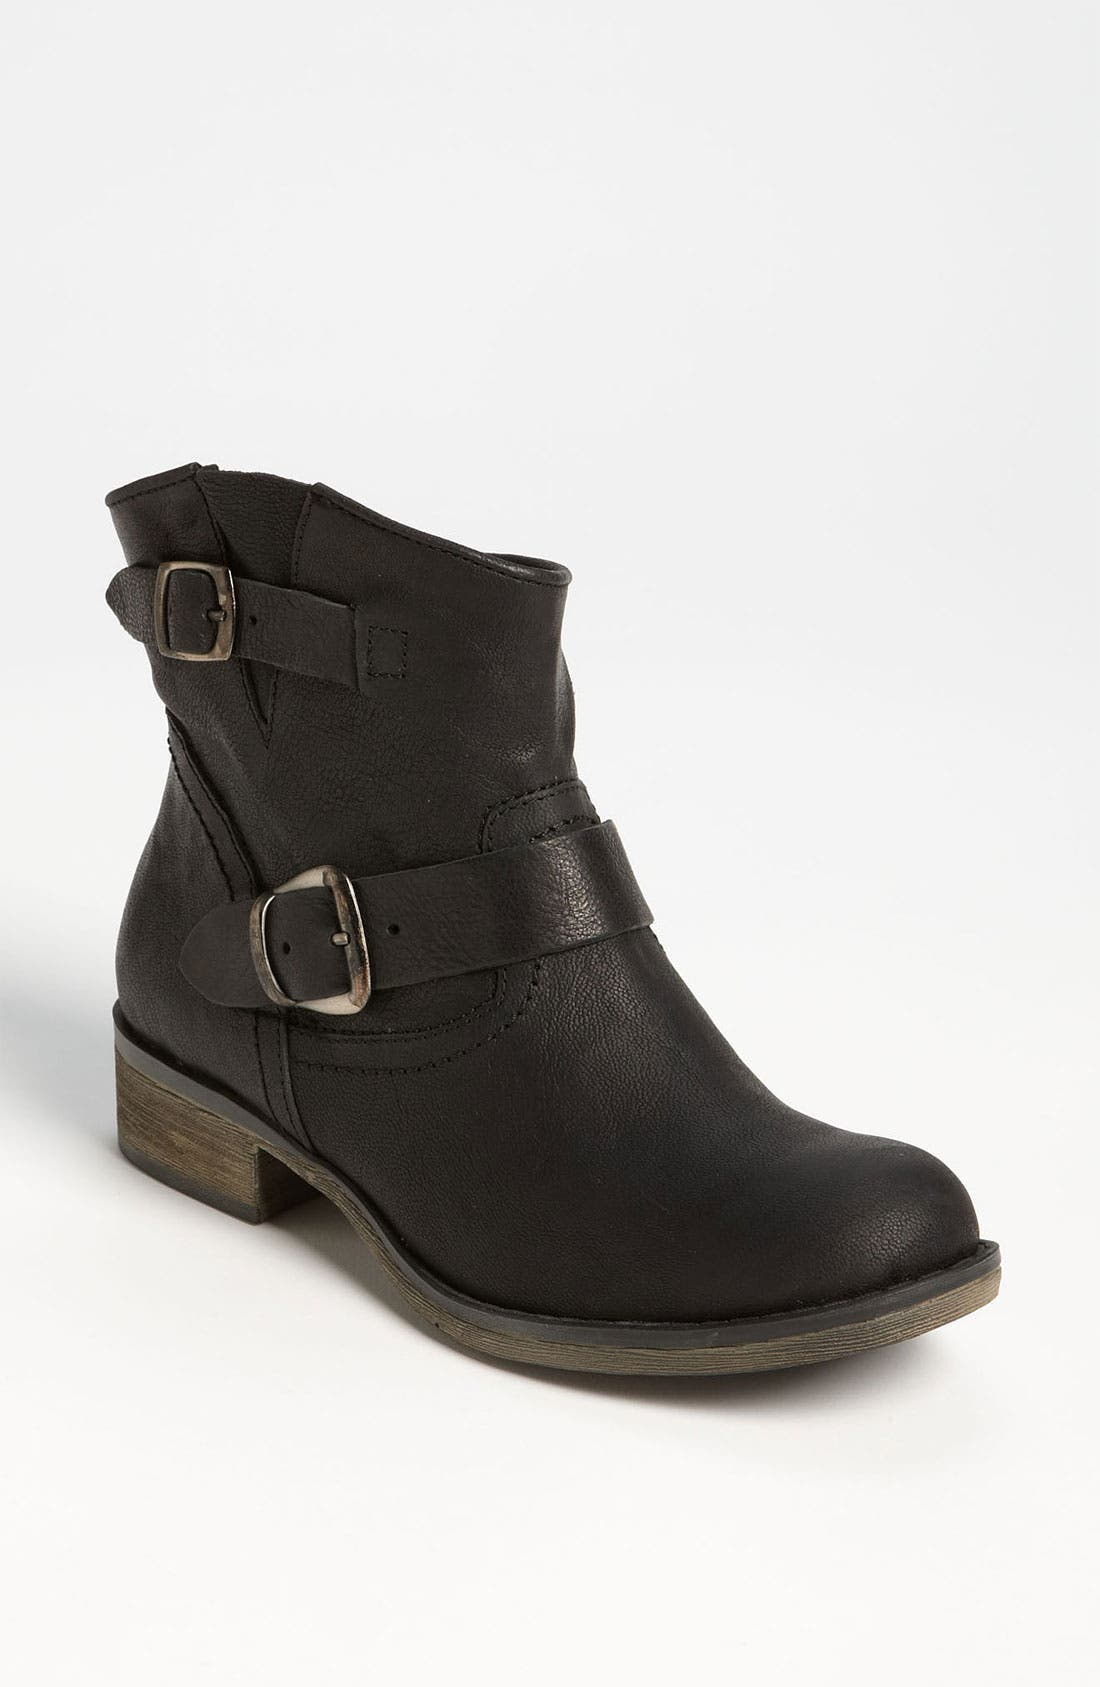 Main Image - REPORT 'Jude' Ankle Boot